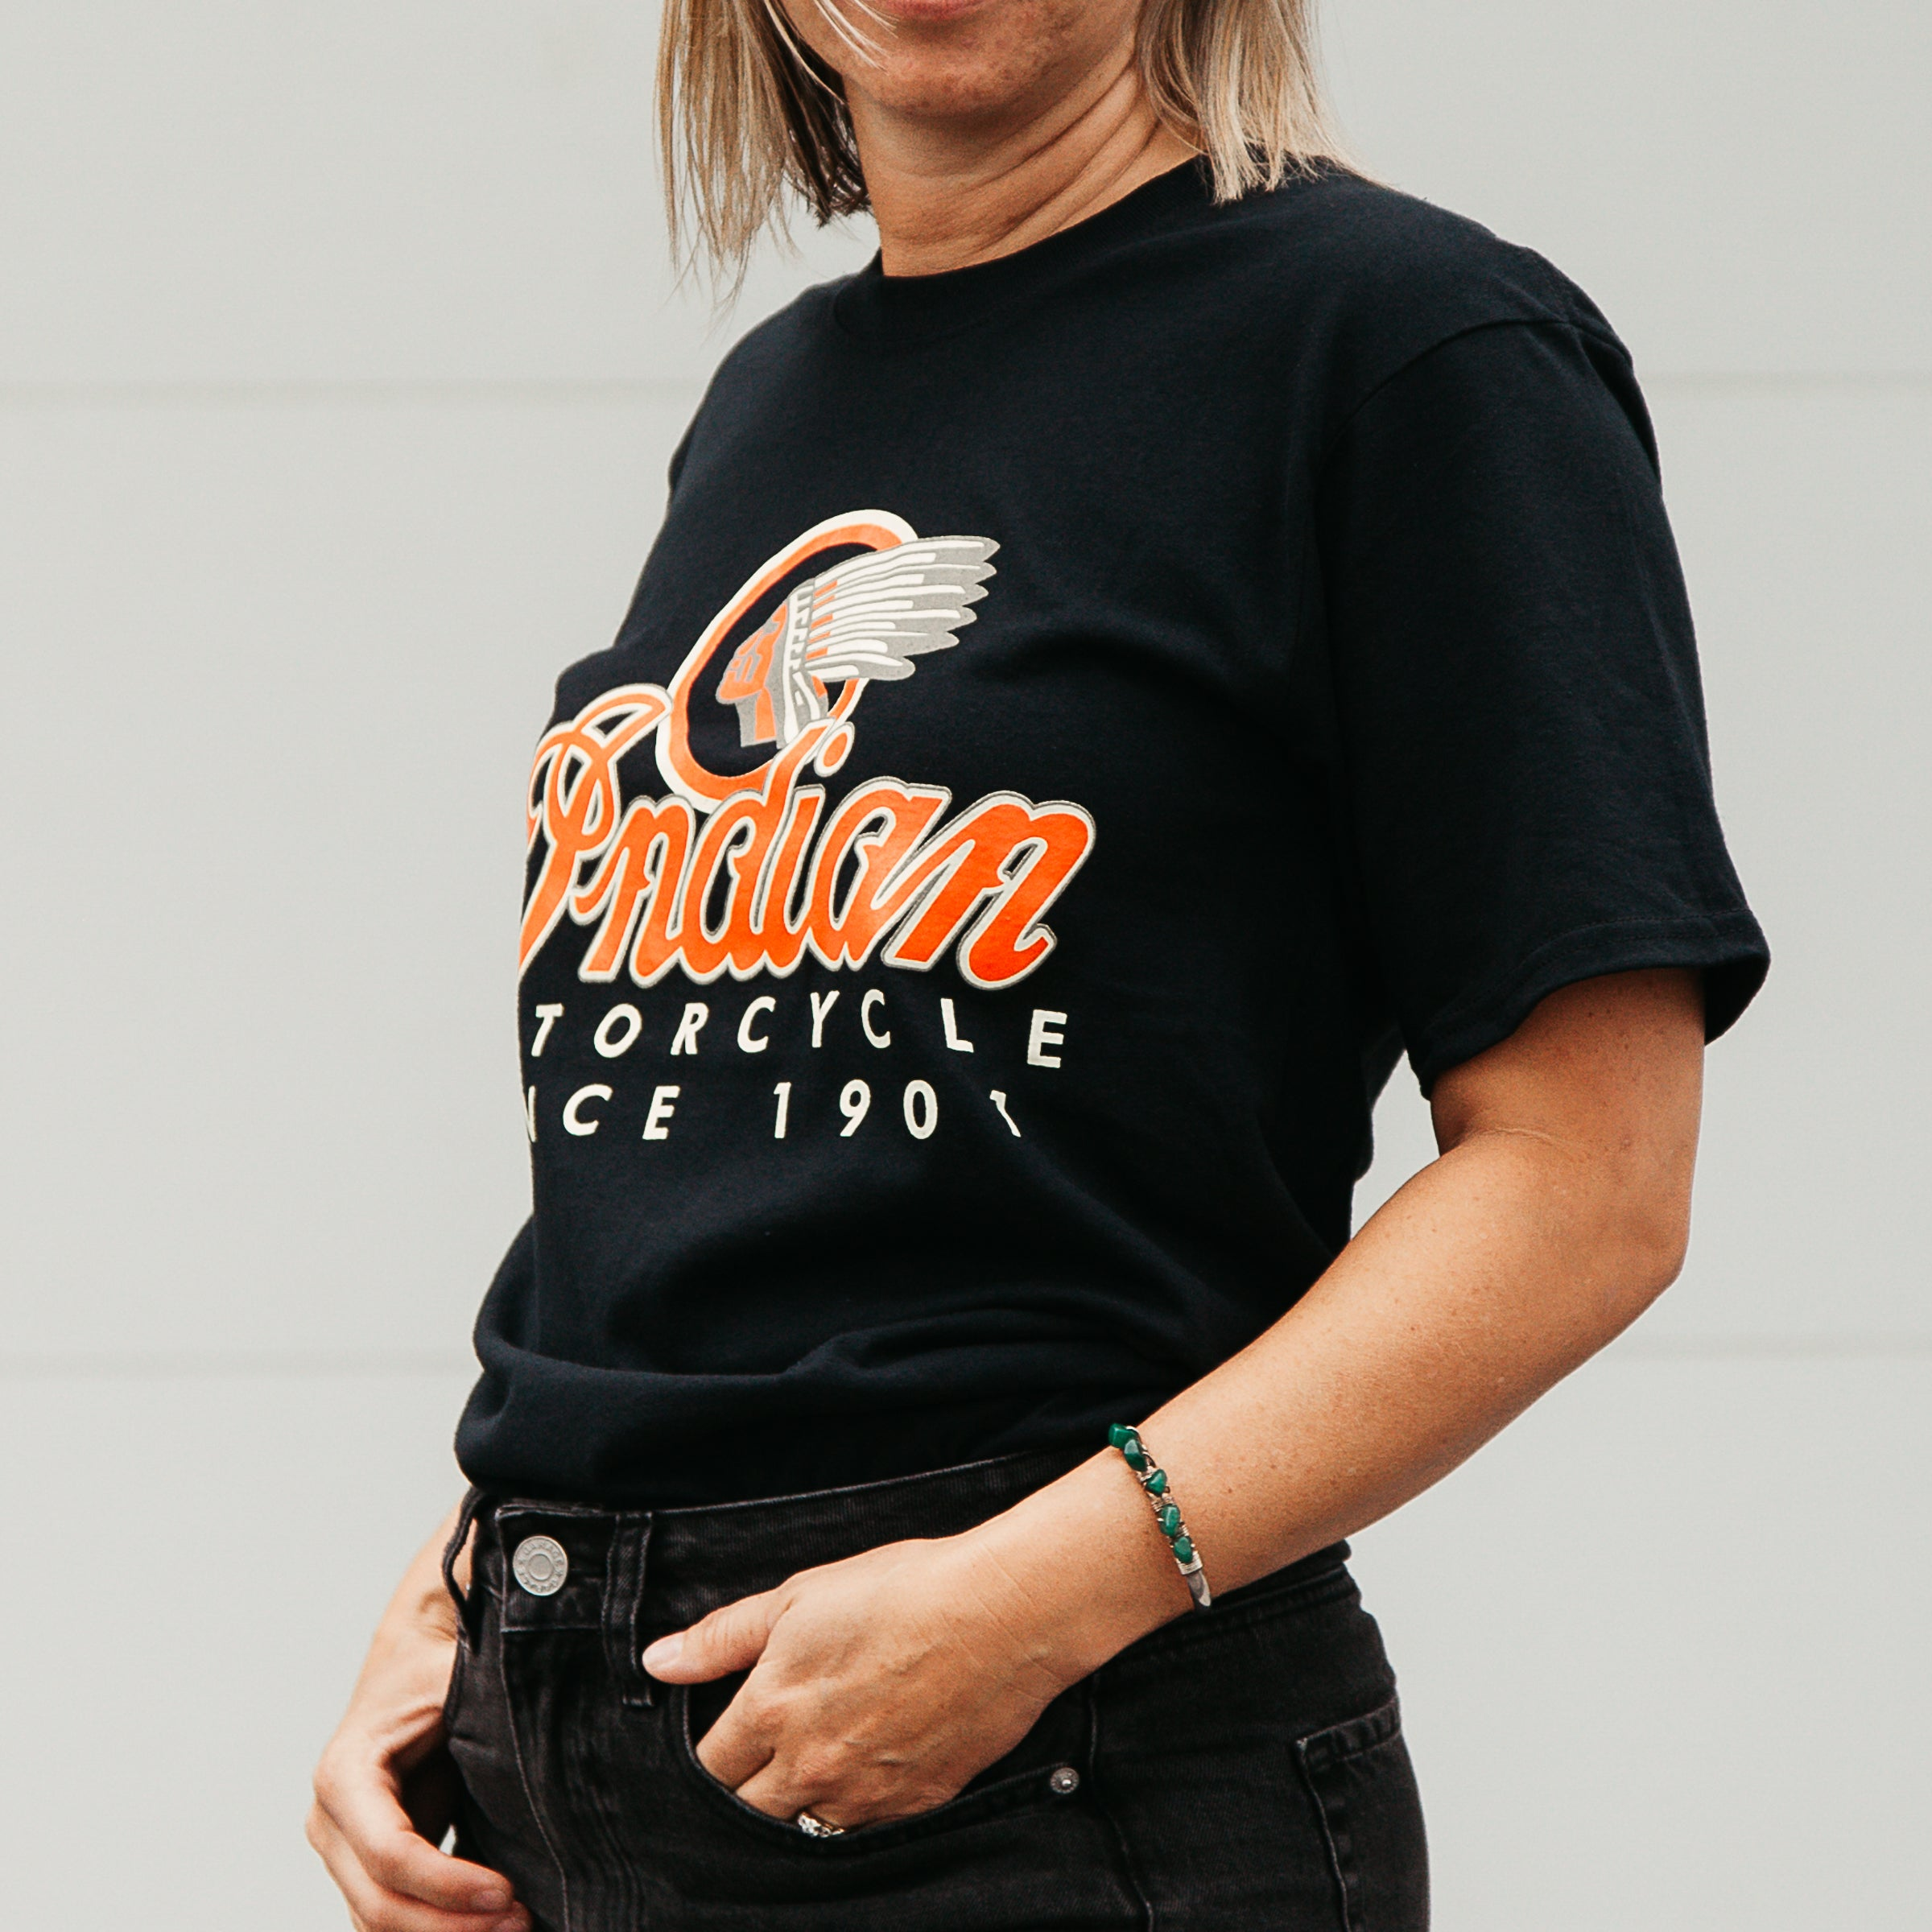 Dreamcycle Motorcycle Museum |  Indian motorcycle tshirt being modelled in lifestyle setting.